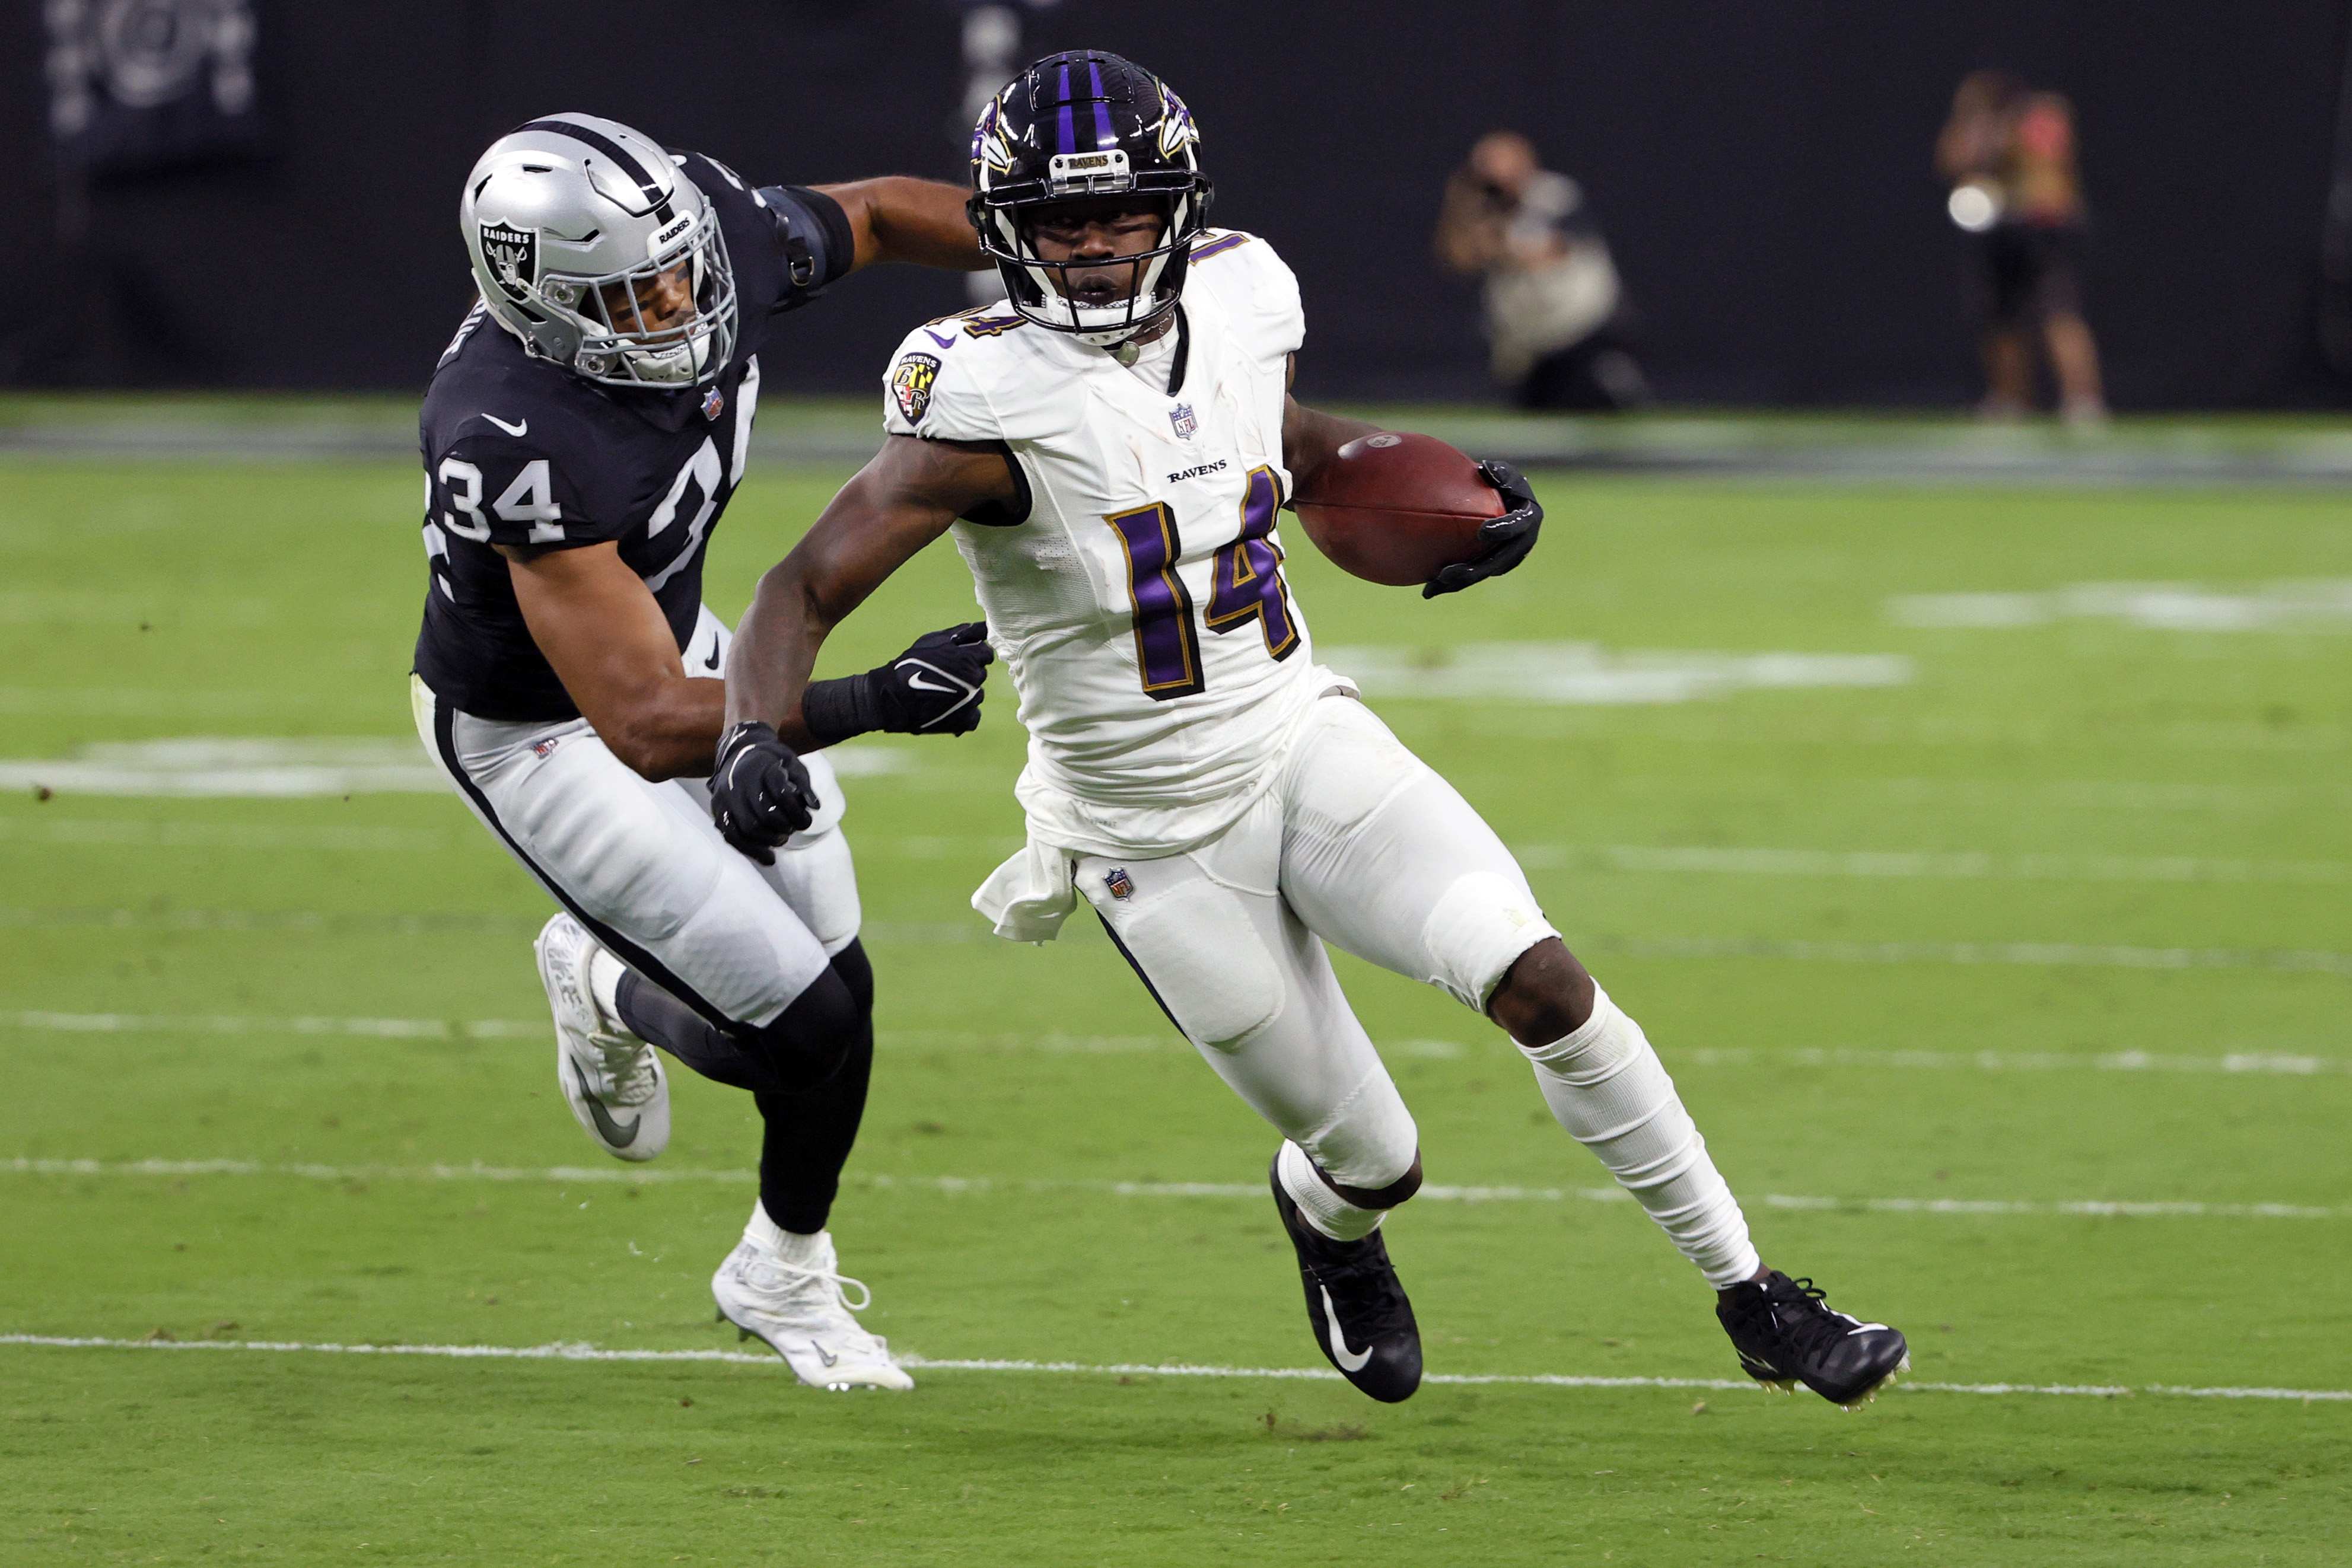 Sammy Watkins of the Baltimore Ravens runs for yardage after catching a pass against past K.J. Wright of the Las Vegas Raiders at Allegiant Stadium on September 13, 2021 in Las Vegas, Nevada.